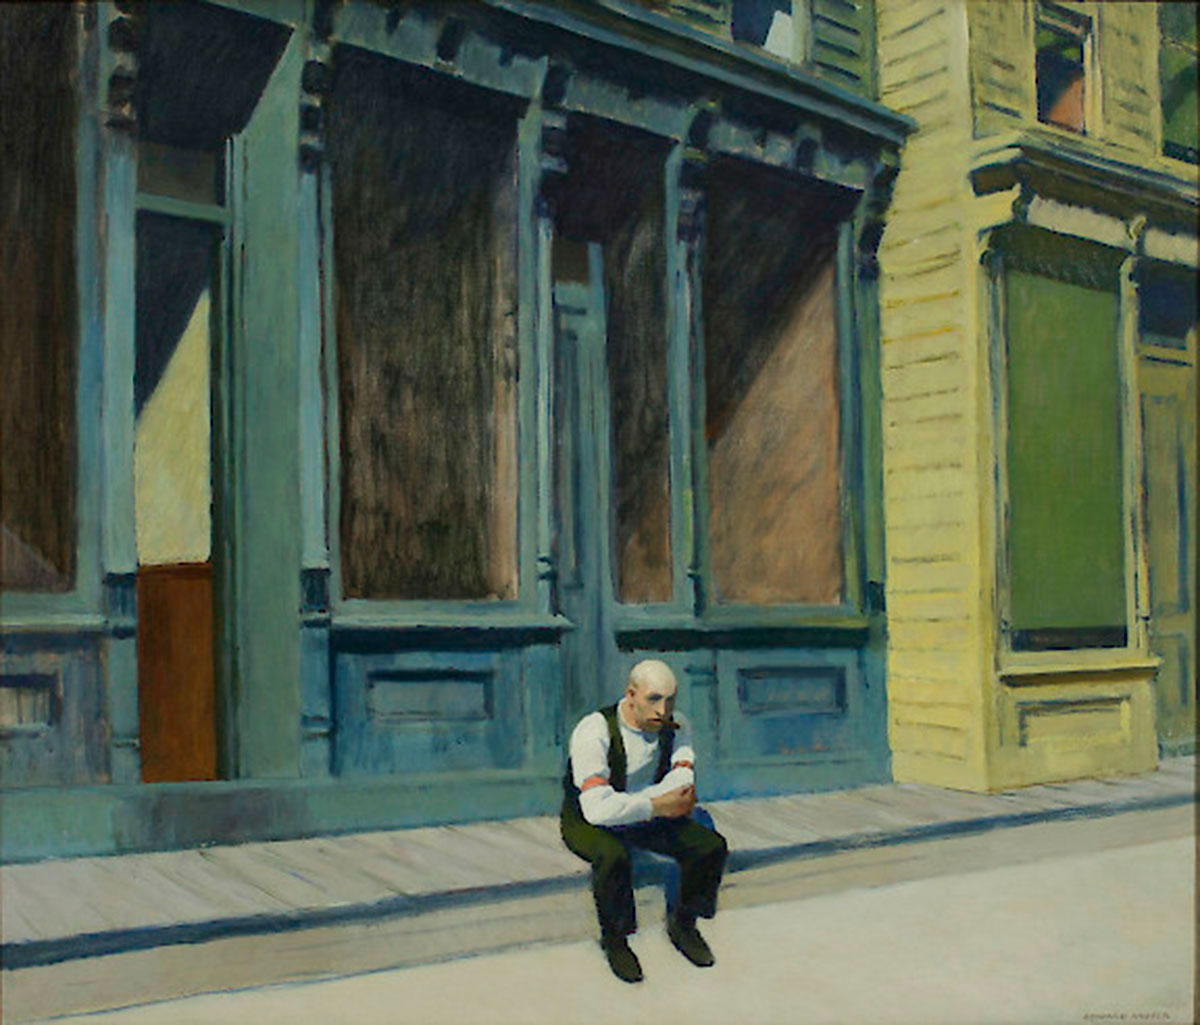 Edward Hopper: Sunday, 1926, Phillips Collection, Washington D.C.